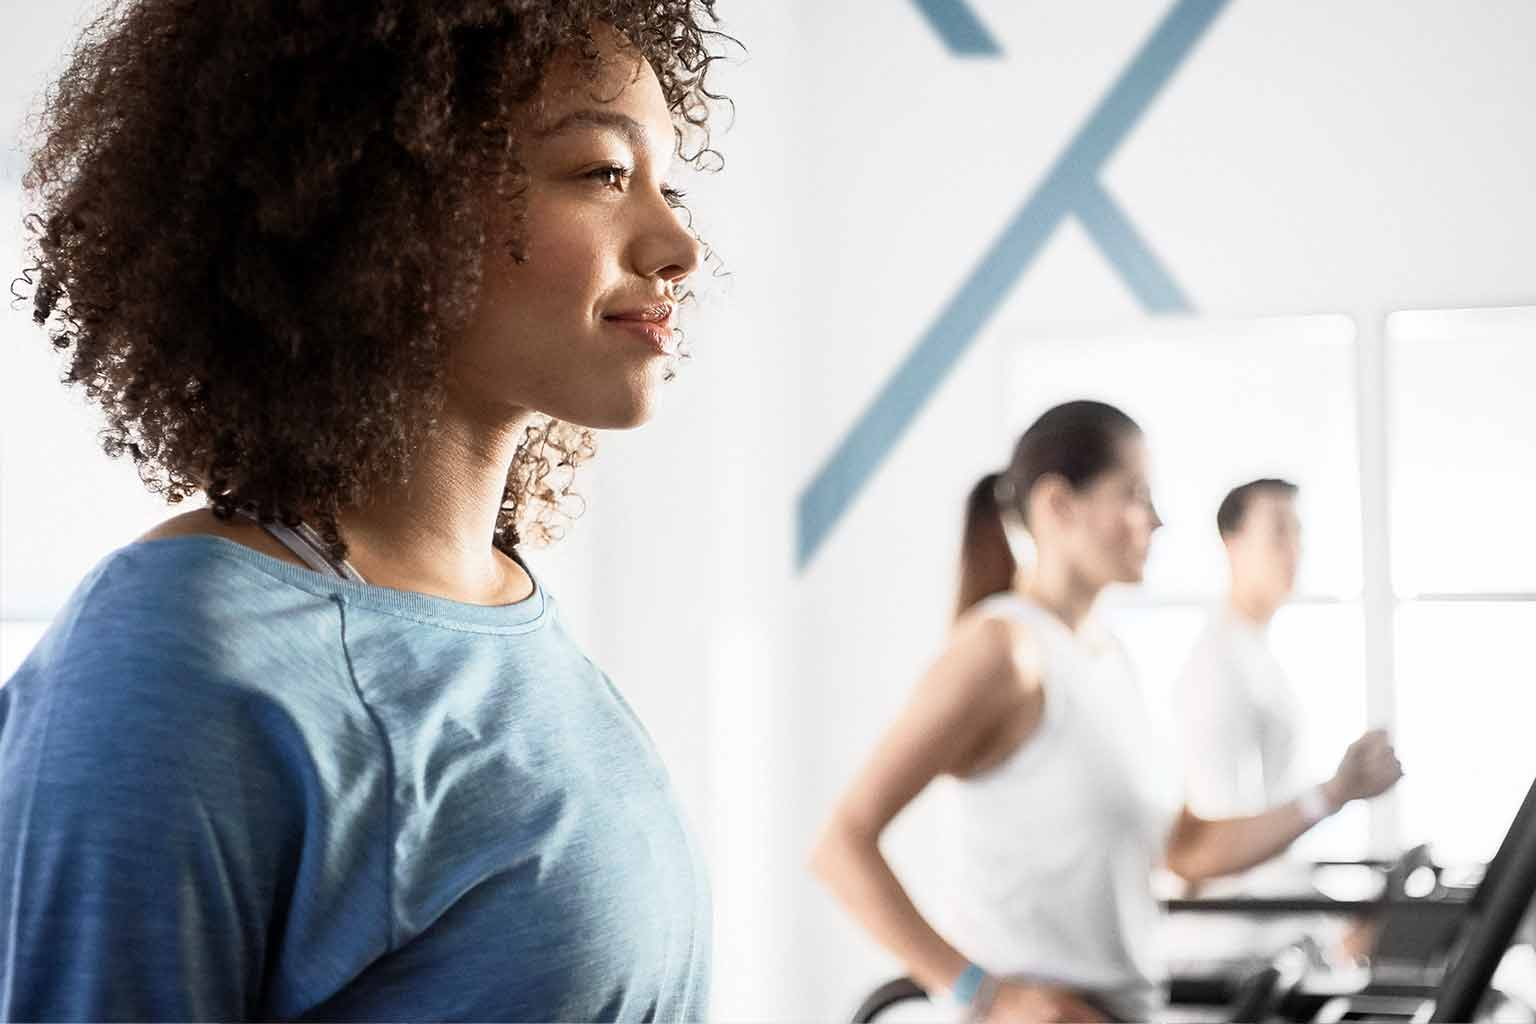 A woman in a blue workout shirt and one man and one woman in white workout clothes walk on treadmills